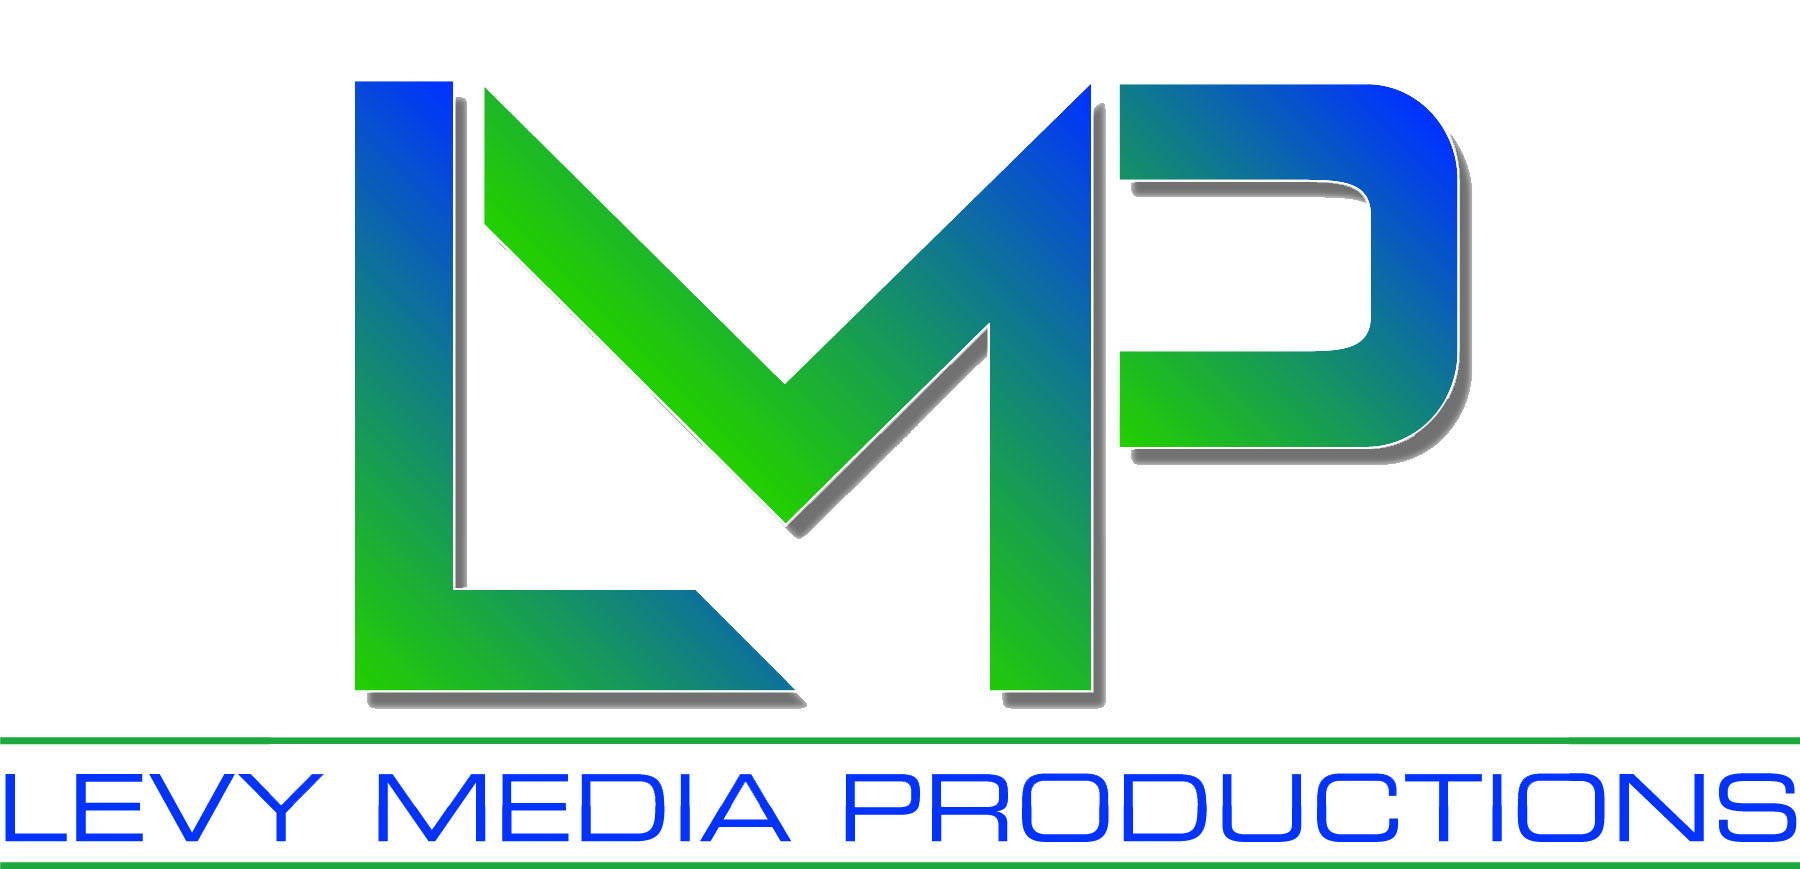 Levy Media Productions